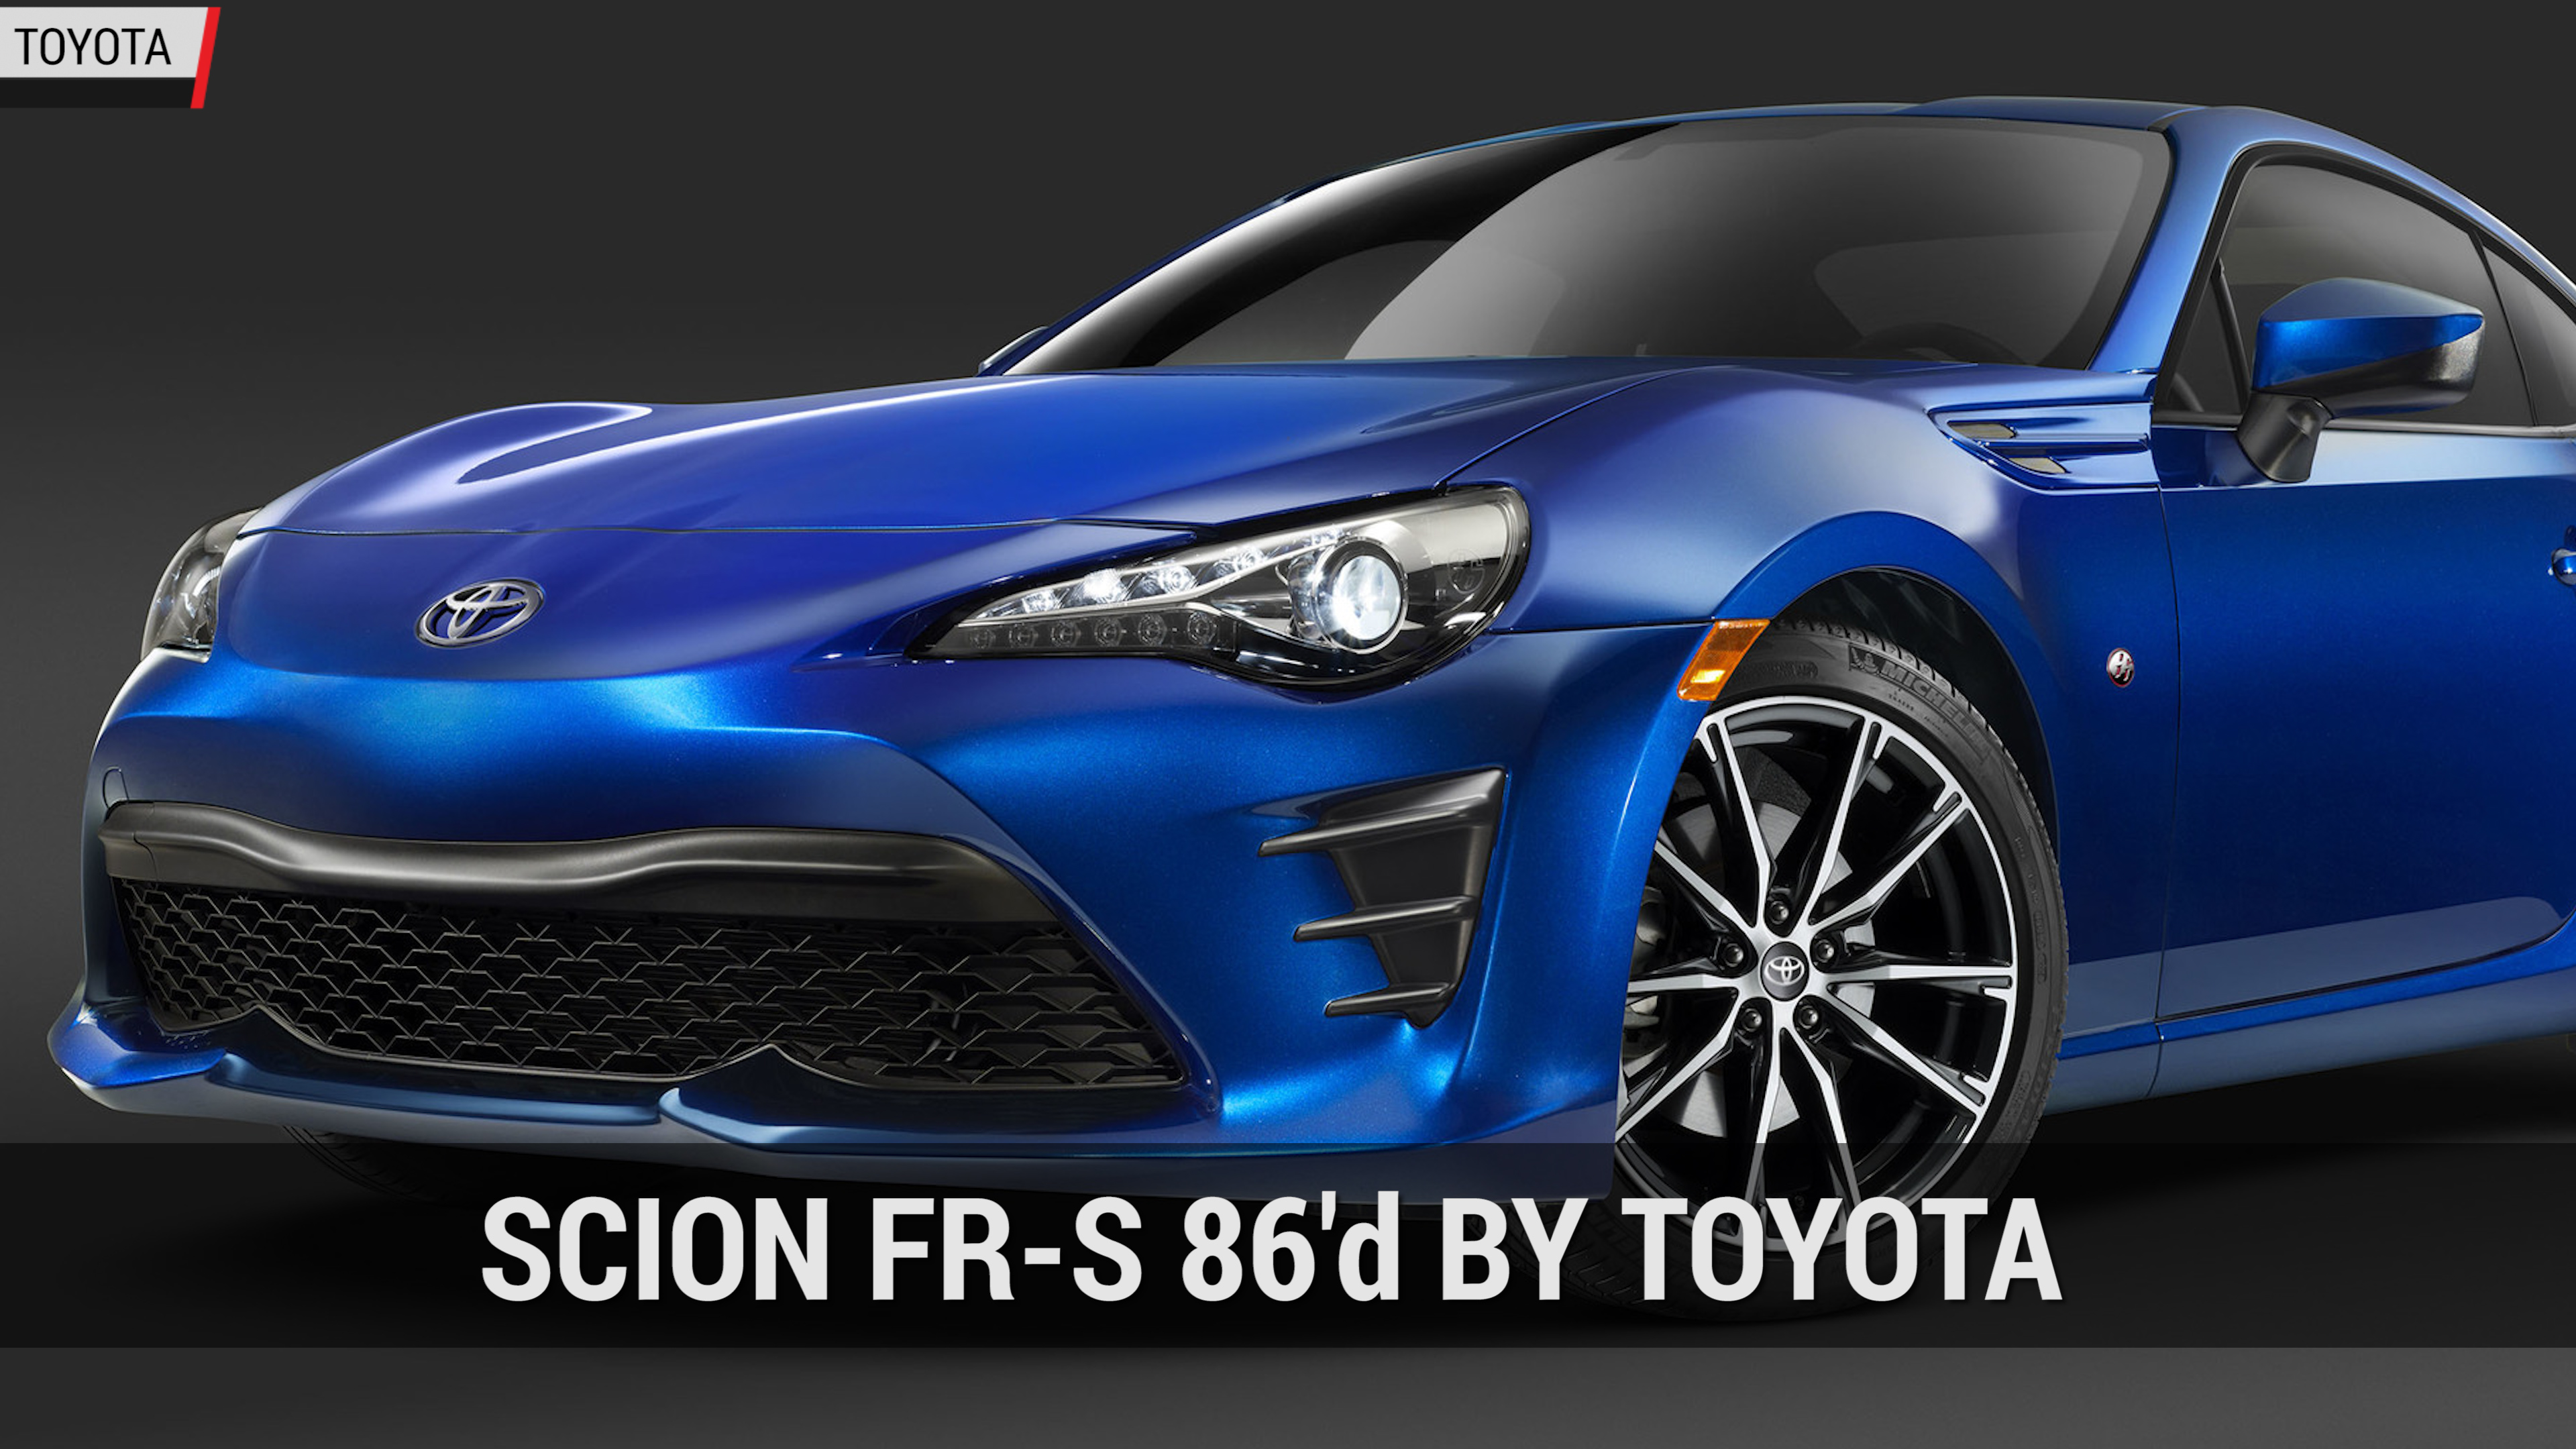 Toyota 86 Replaces The Scion FR-S | Autoblog Minte